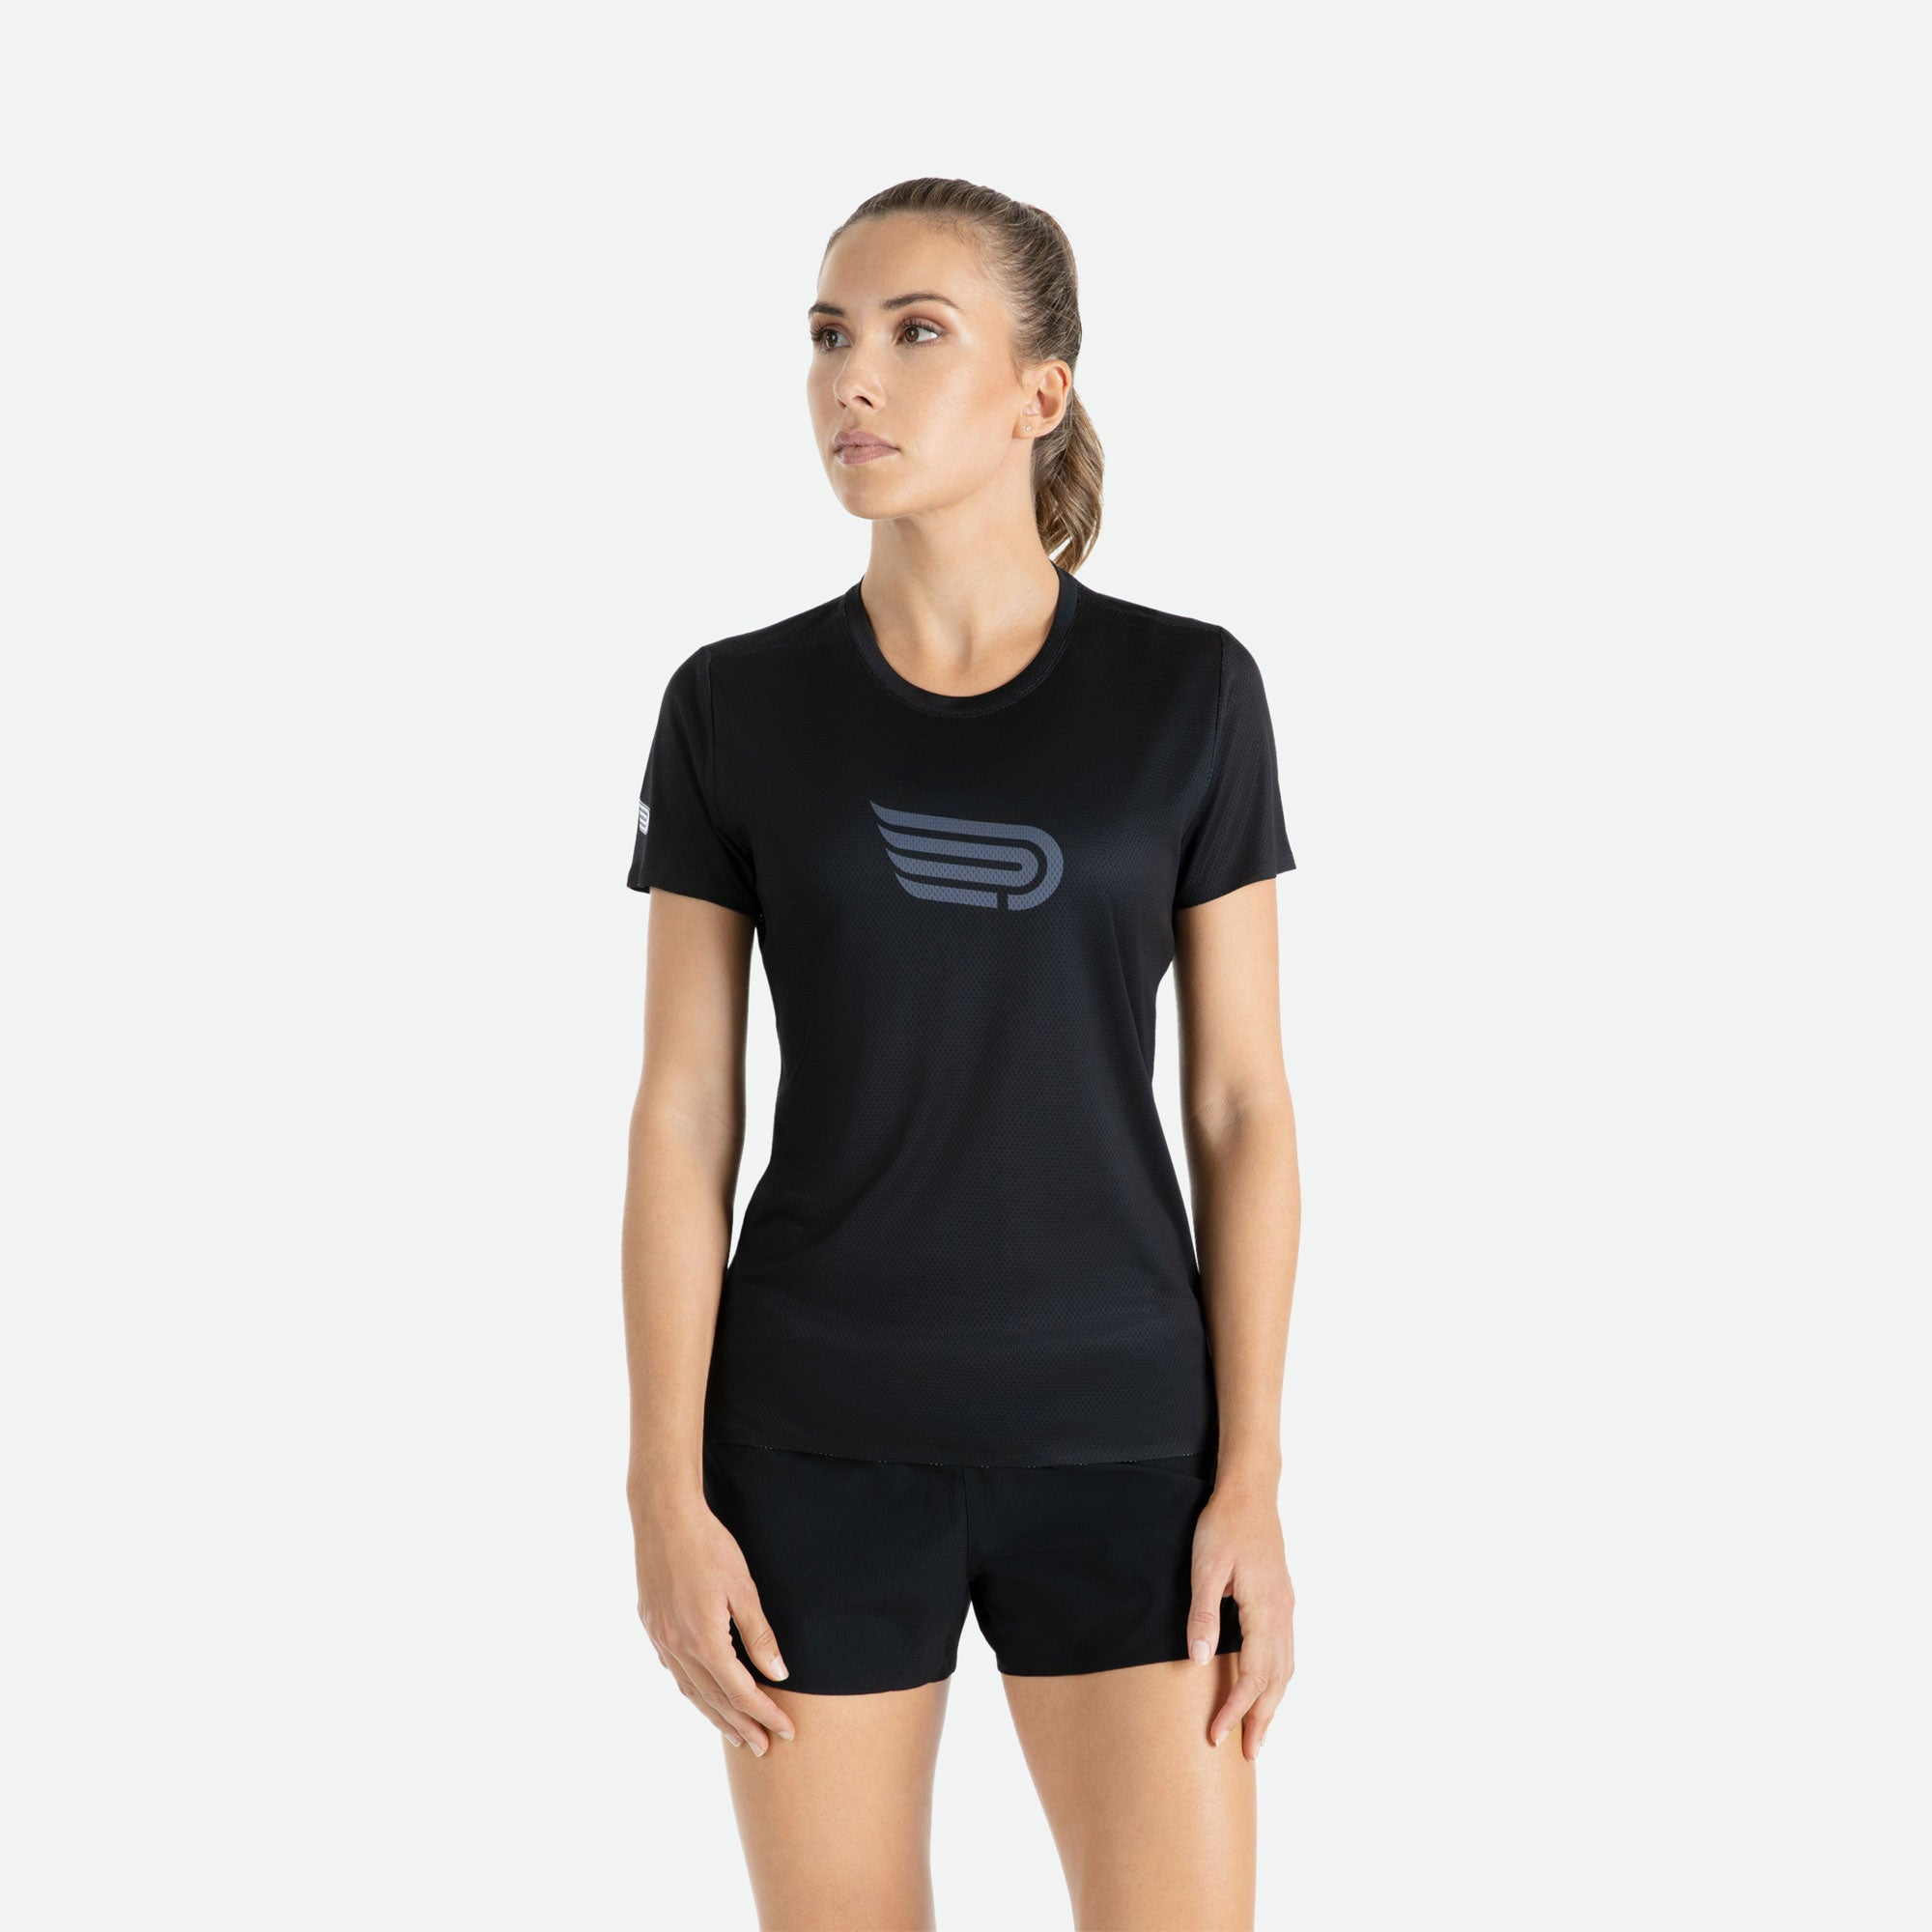 Our Pressio women's Ārahi black/dark grey short sleeve t-shirt features EcoTECH MF fabric which has dual filament recycled polyester yarns from Unifi for superior moisture control to keep you dry.